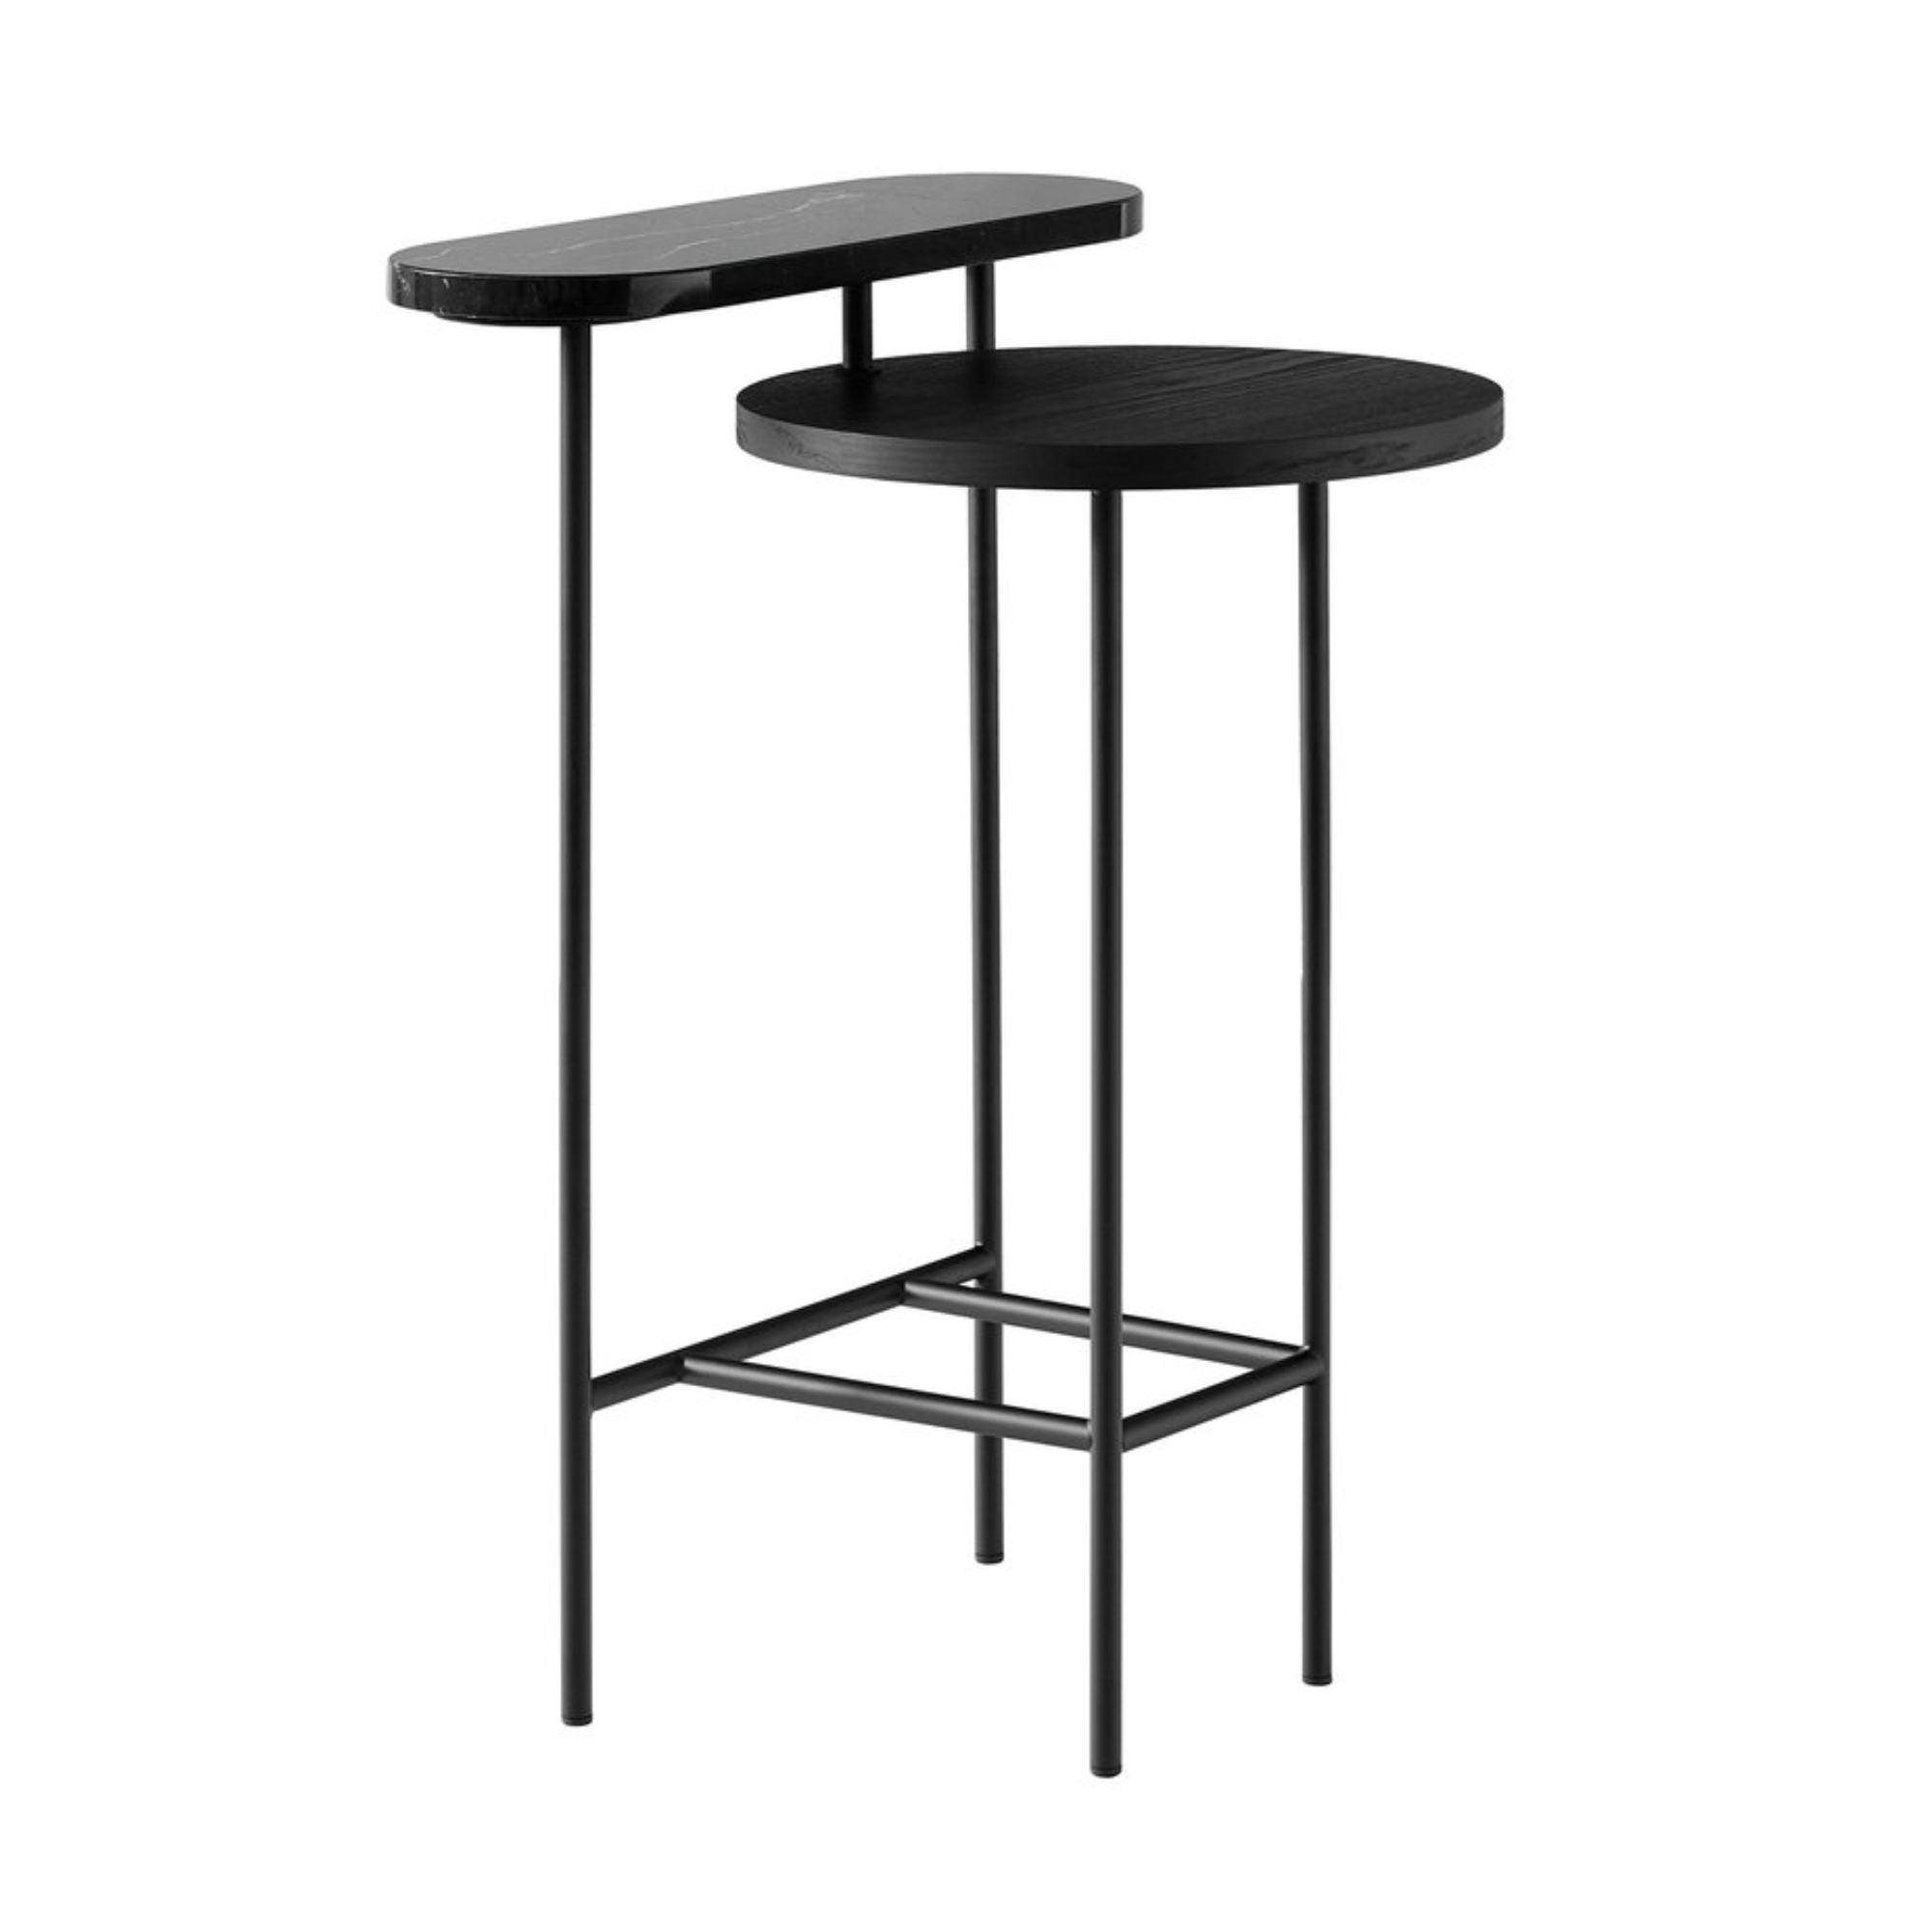 &Tradition JH26 Palette Side Table, black